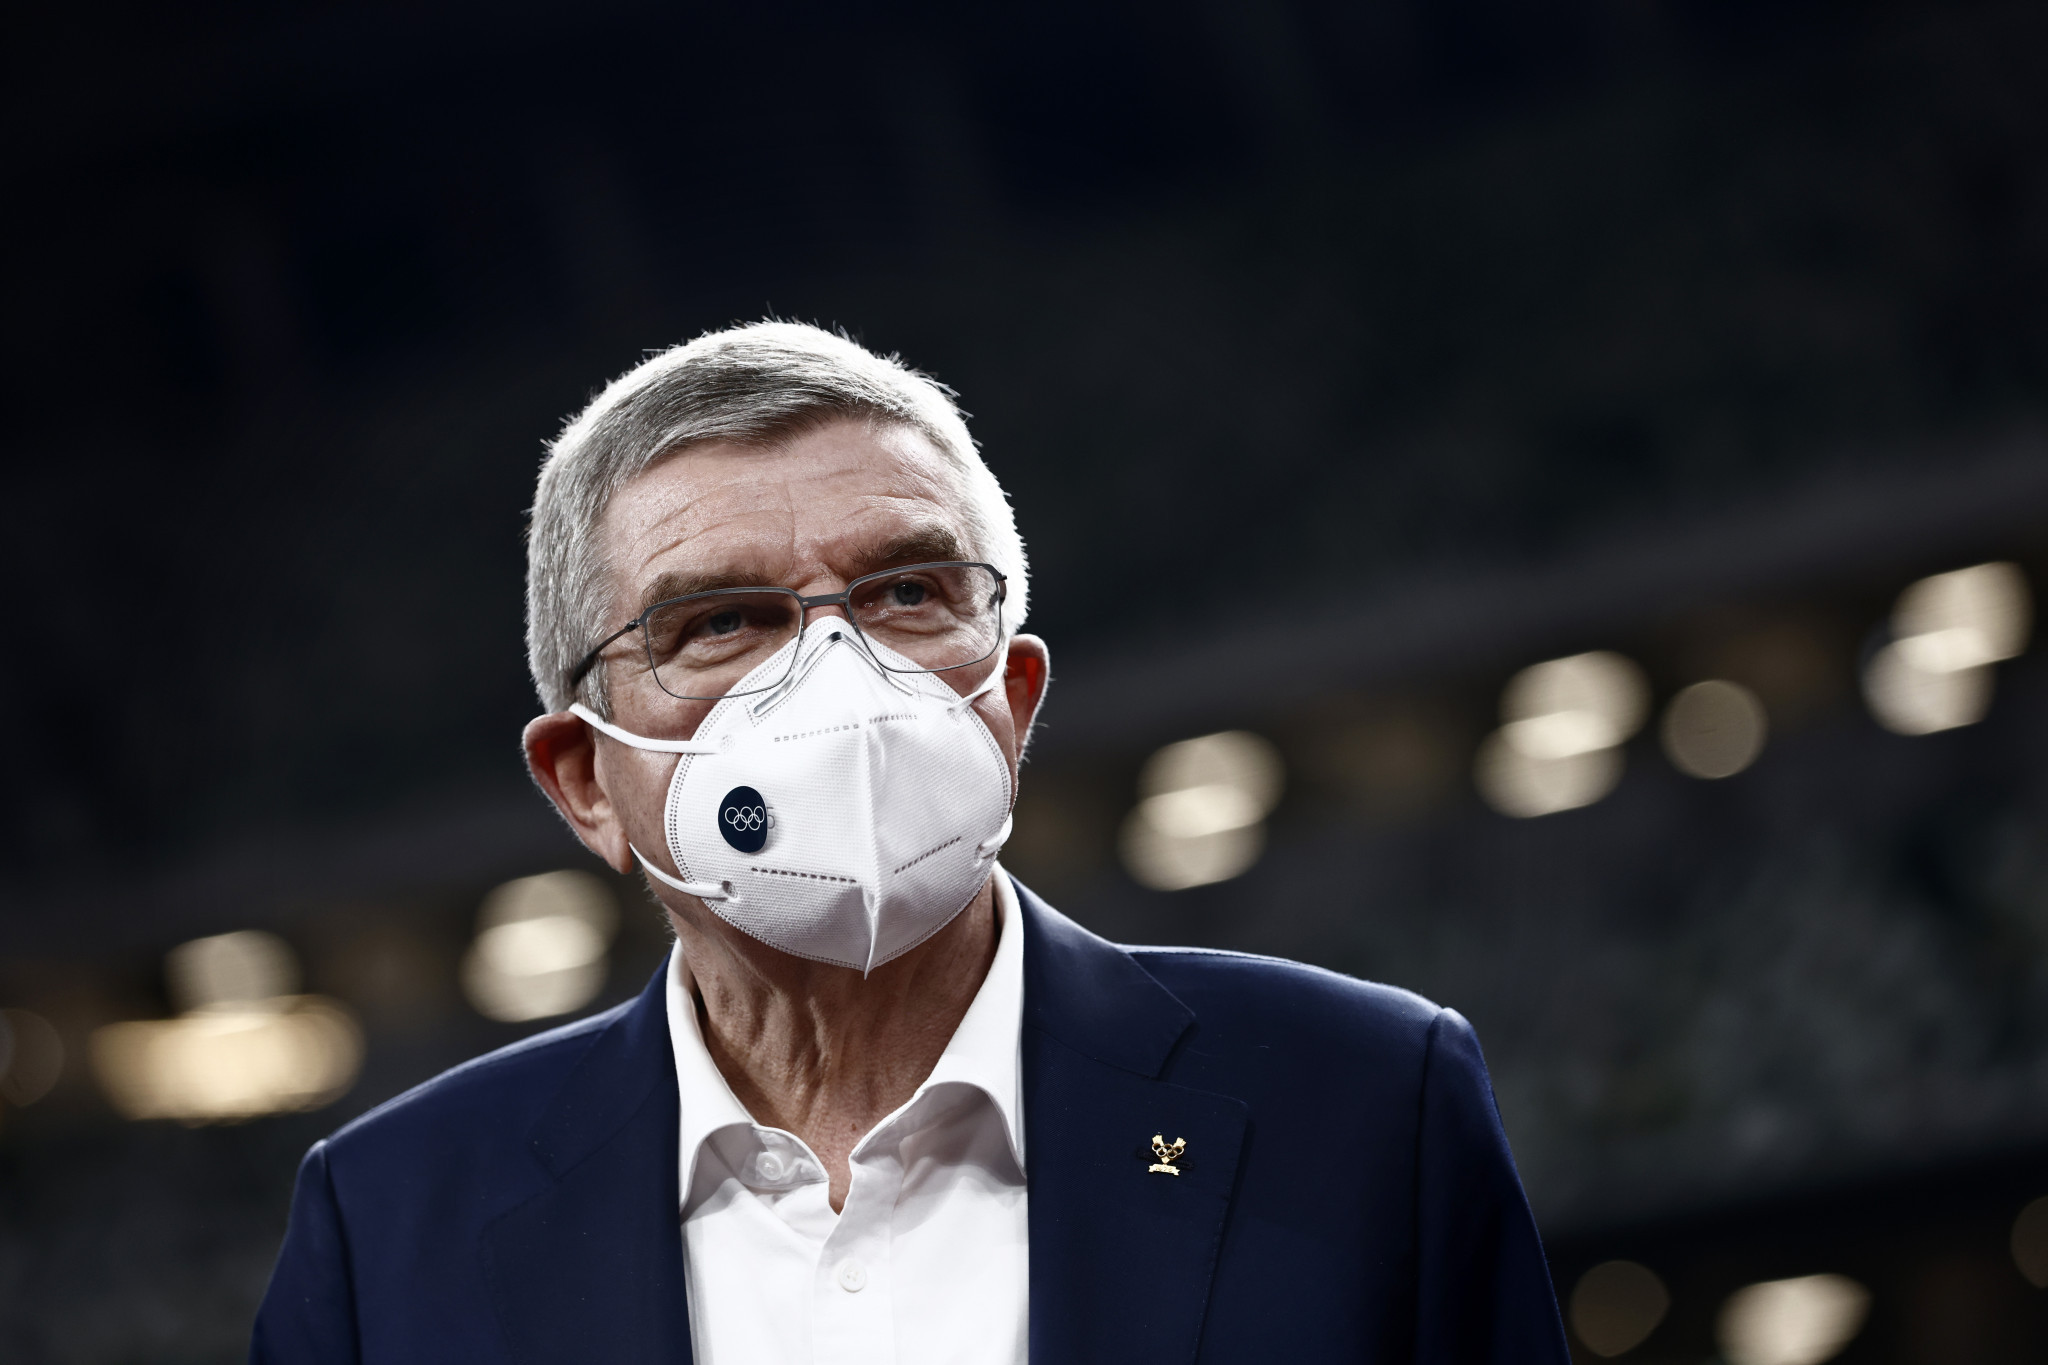 IOC President Bach expected to visit Japan and Olympic Torch Relay next month